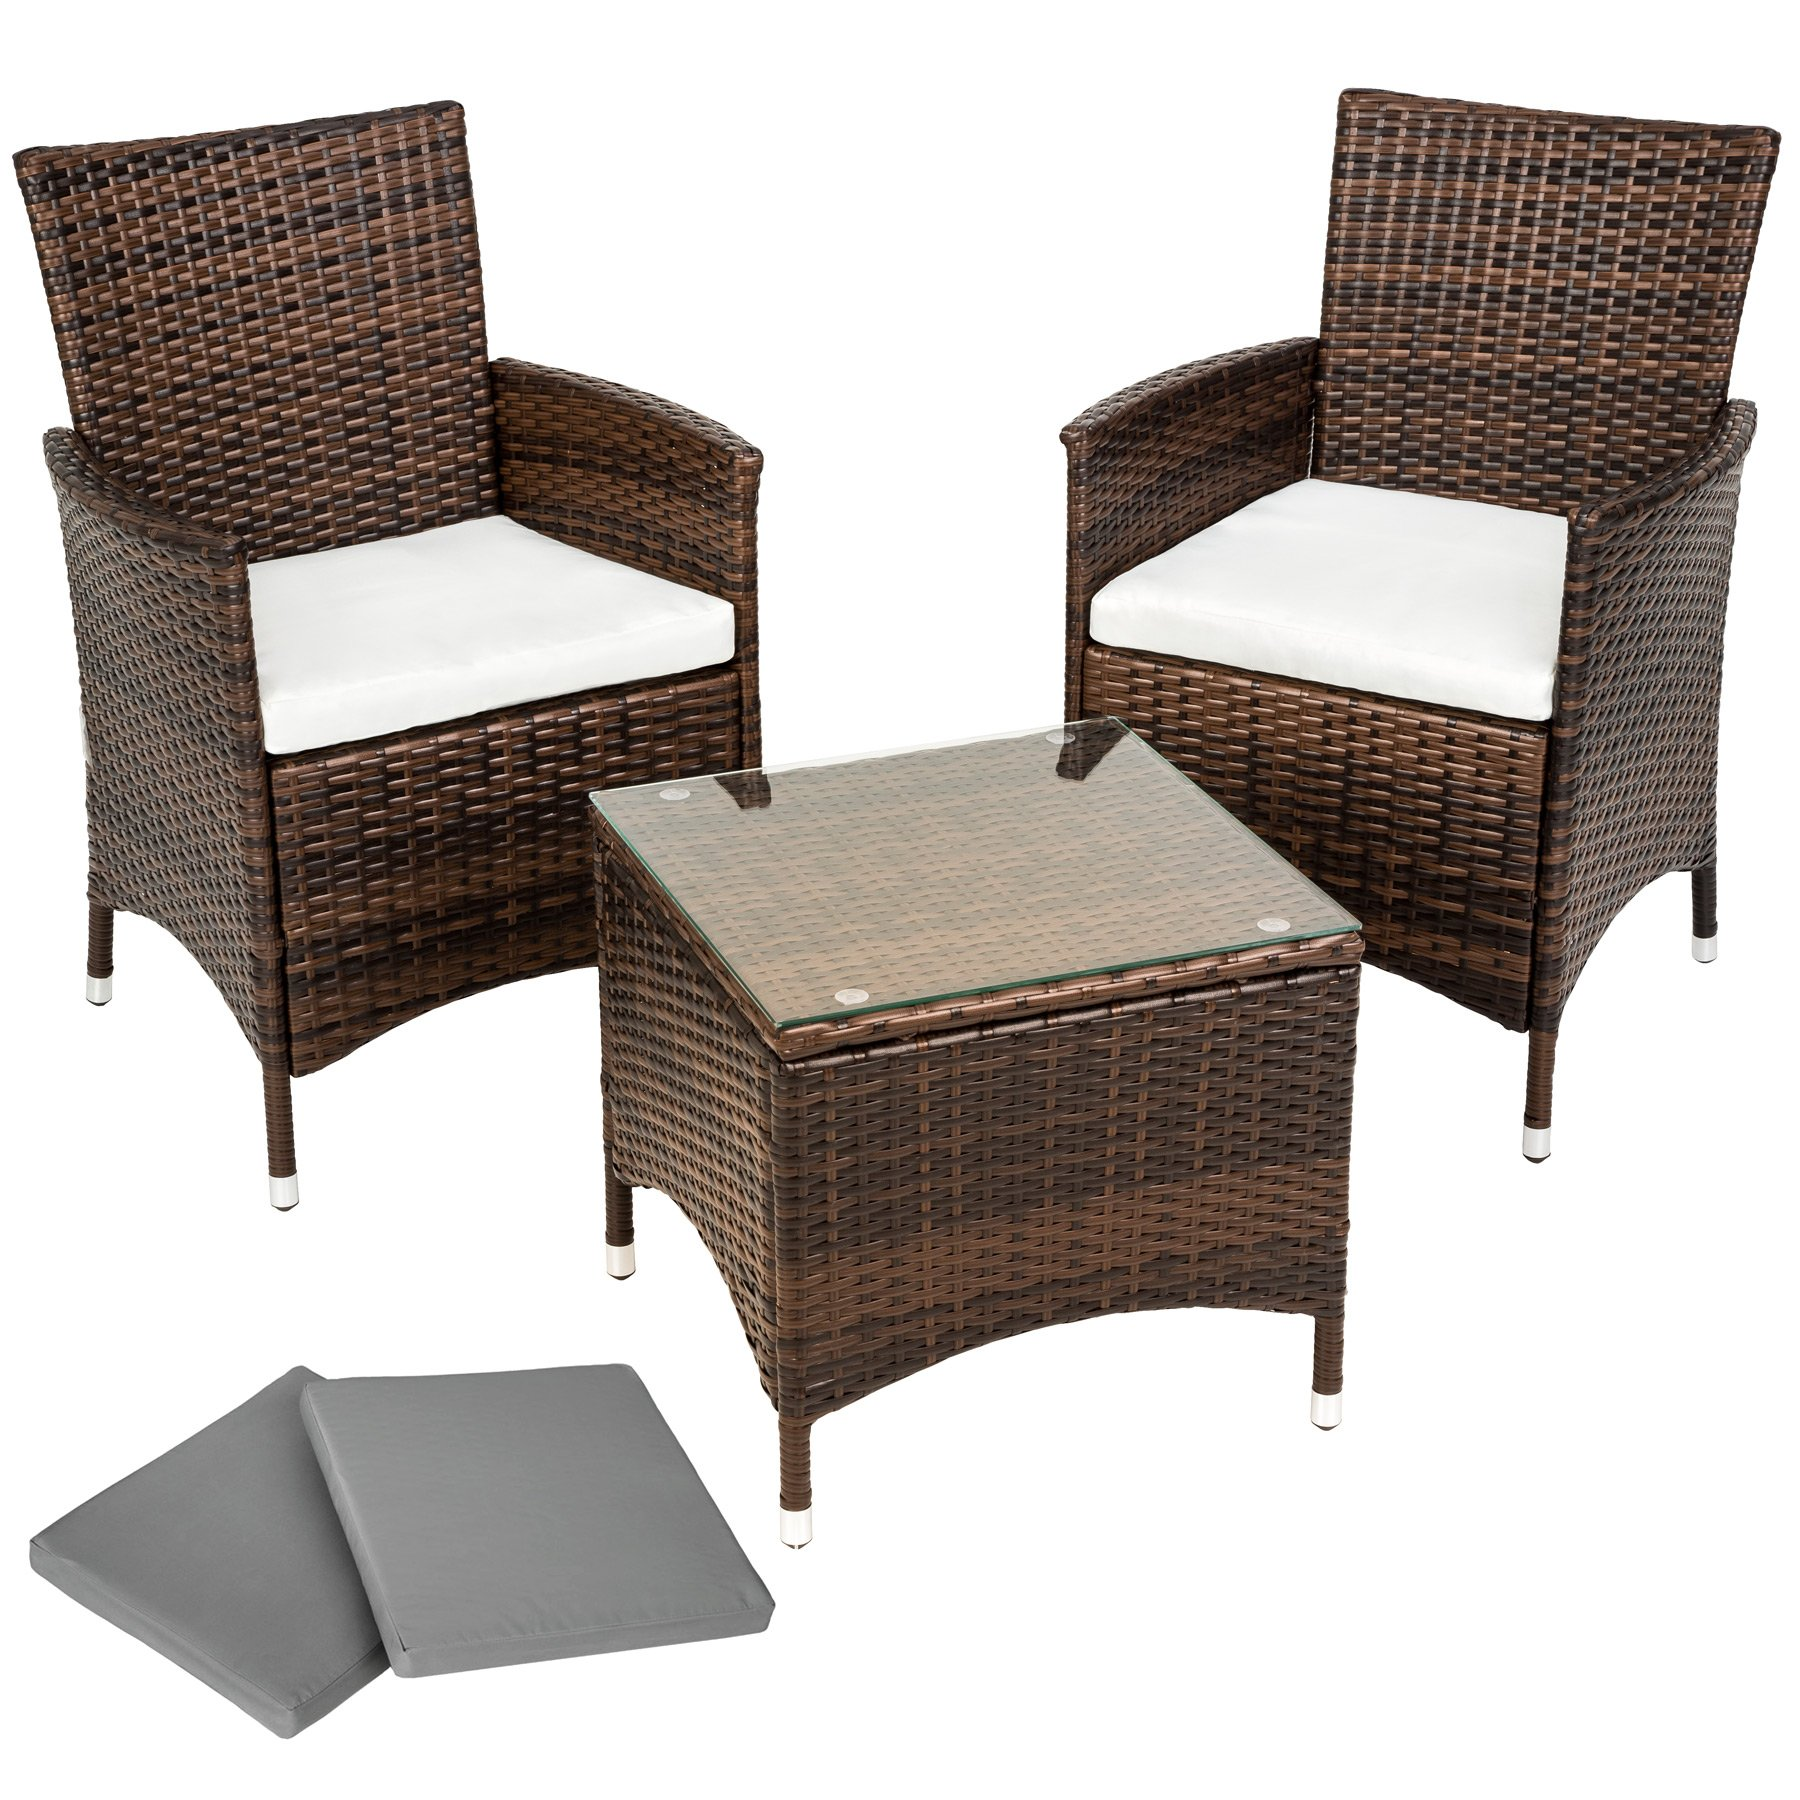 Muebles de Balcon: Amazon.es